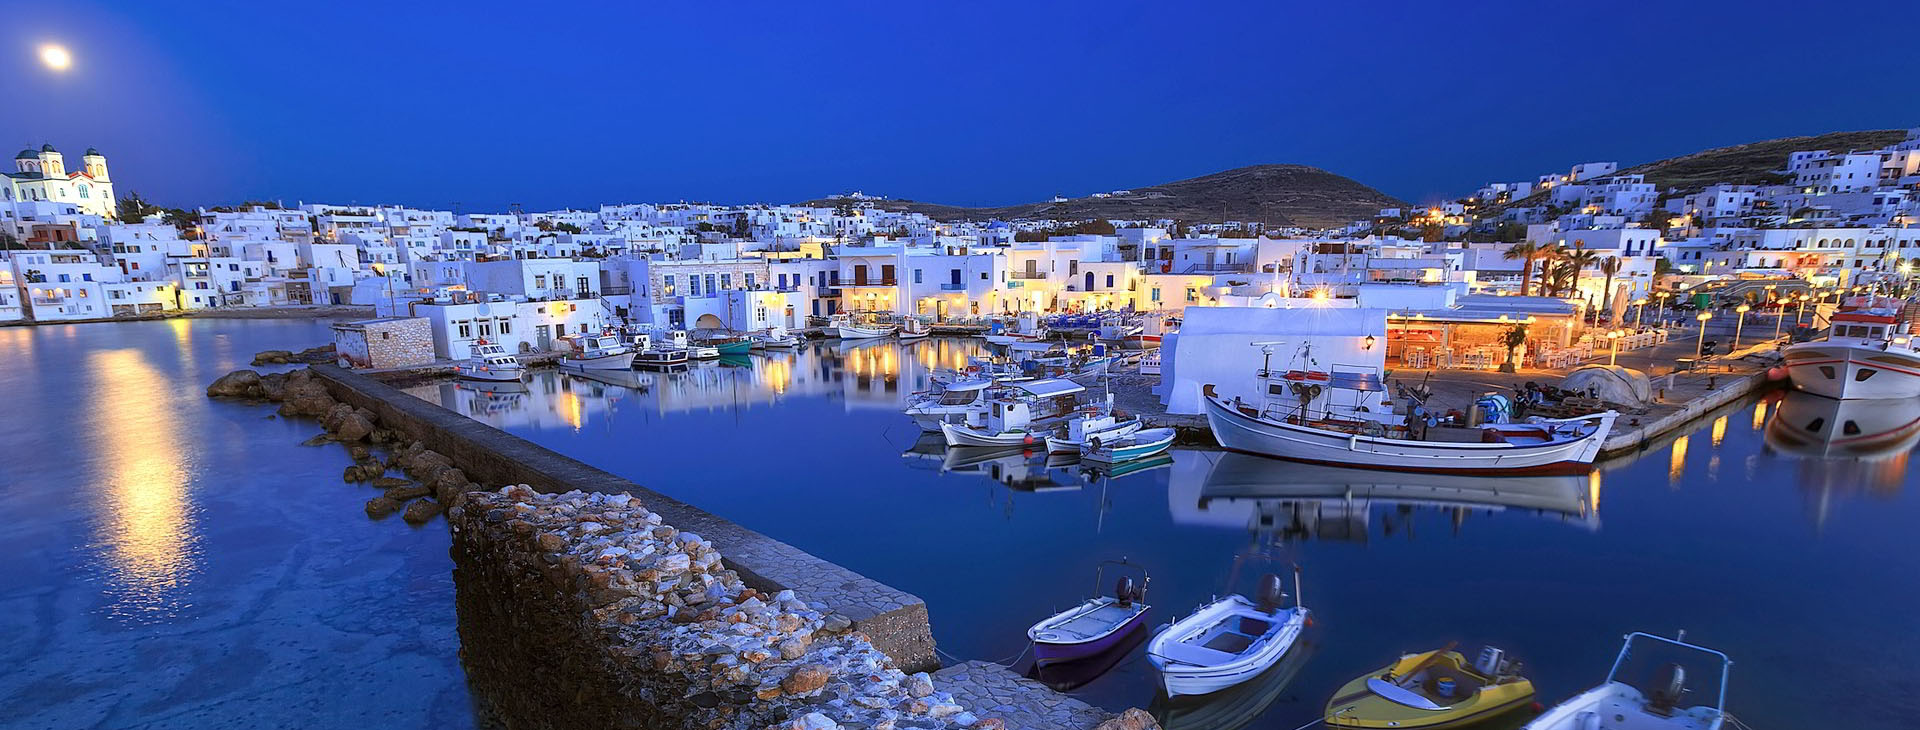 Naousa town at Paros island by night